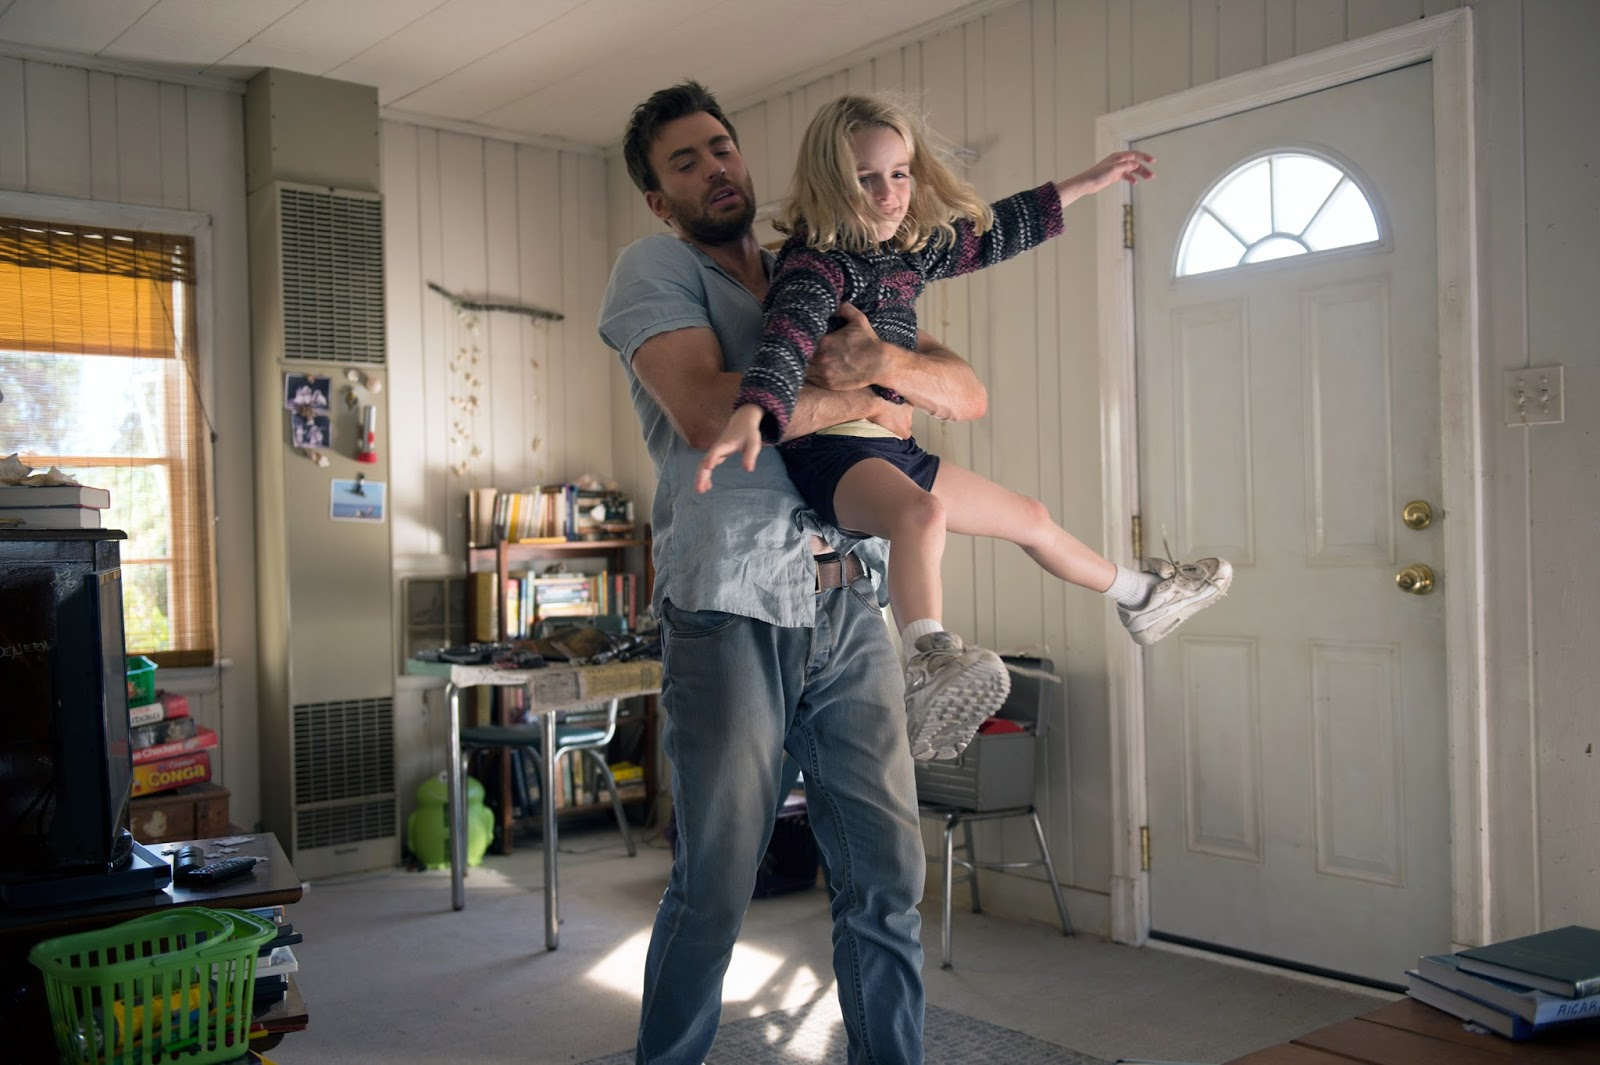 gifted full movie hd free download